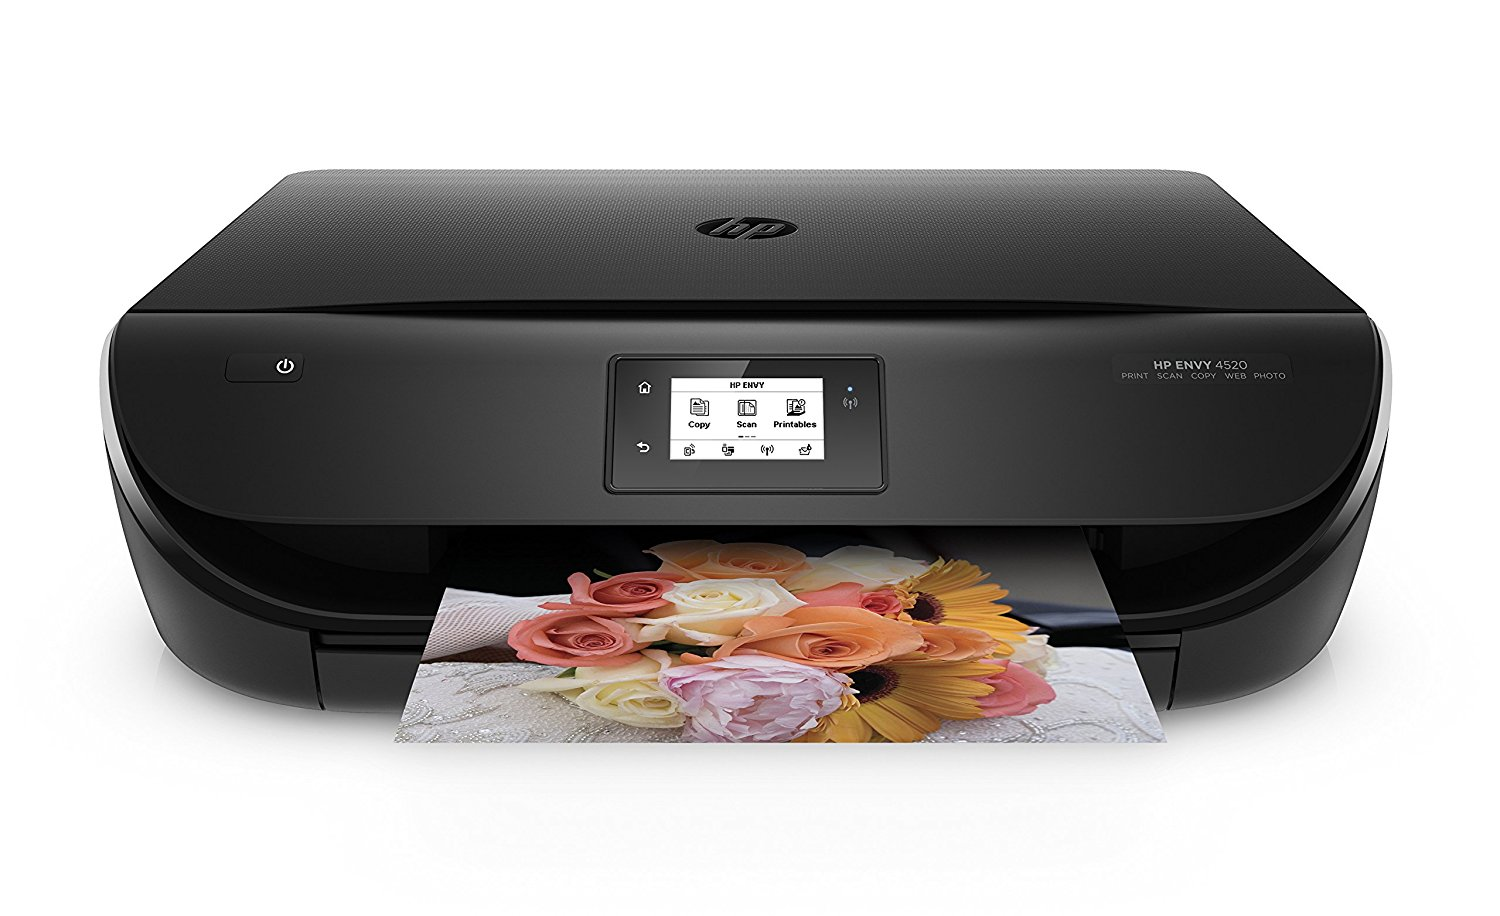 Chromebook Printing using an HP Envy 4520 inkjet printer – review